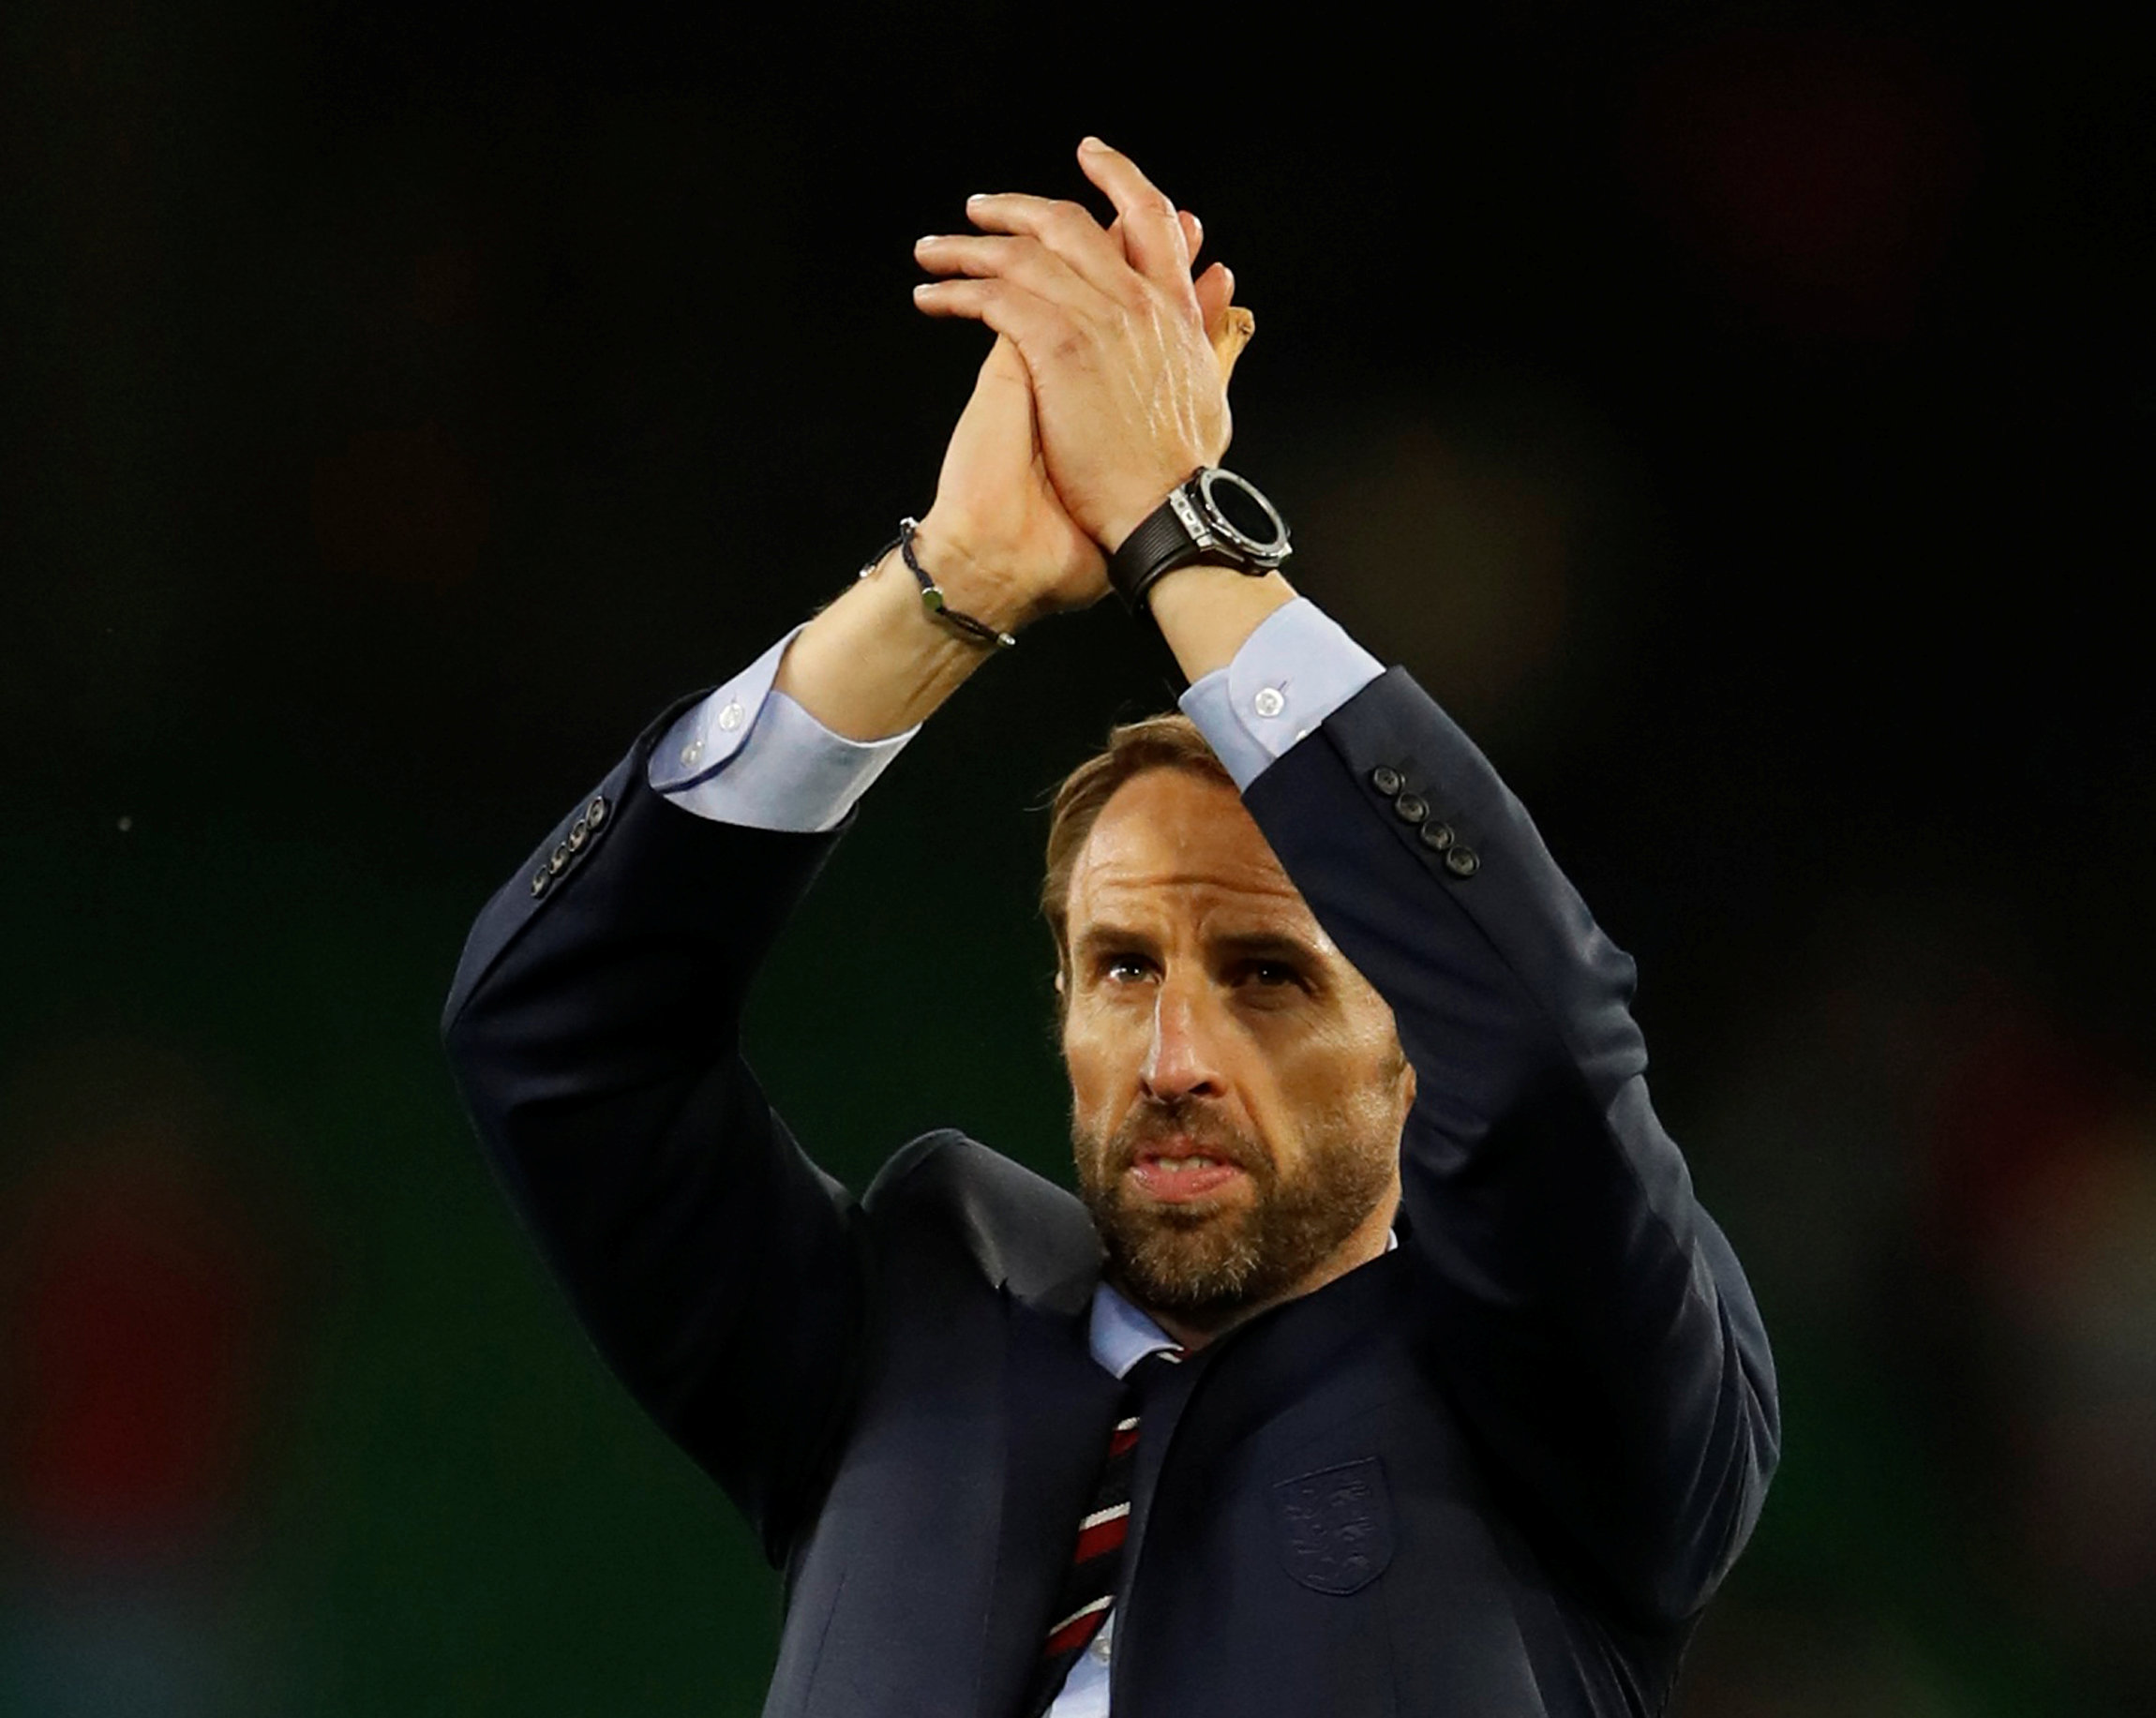 Football: England showed courage against Spain says Southgate